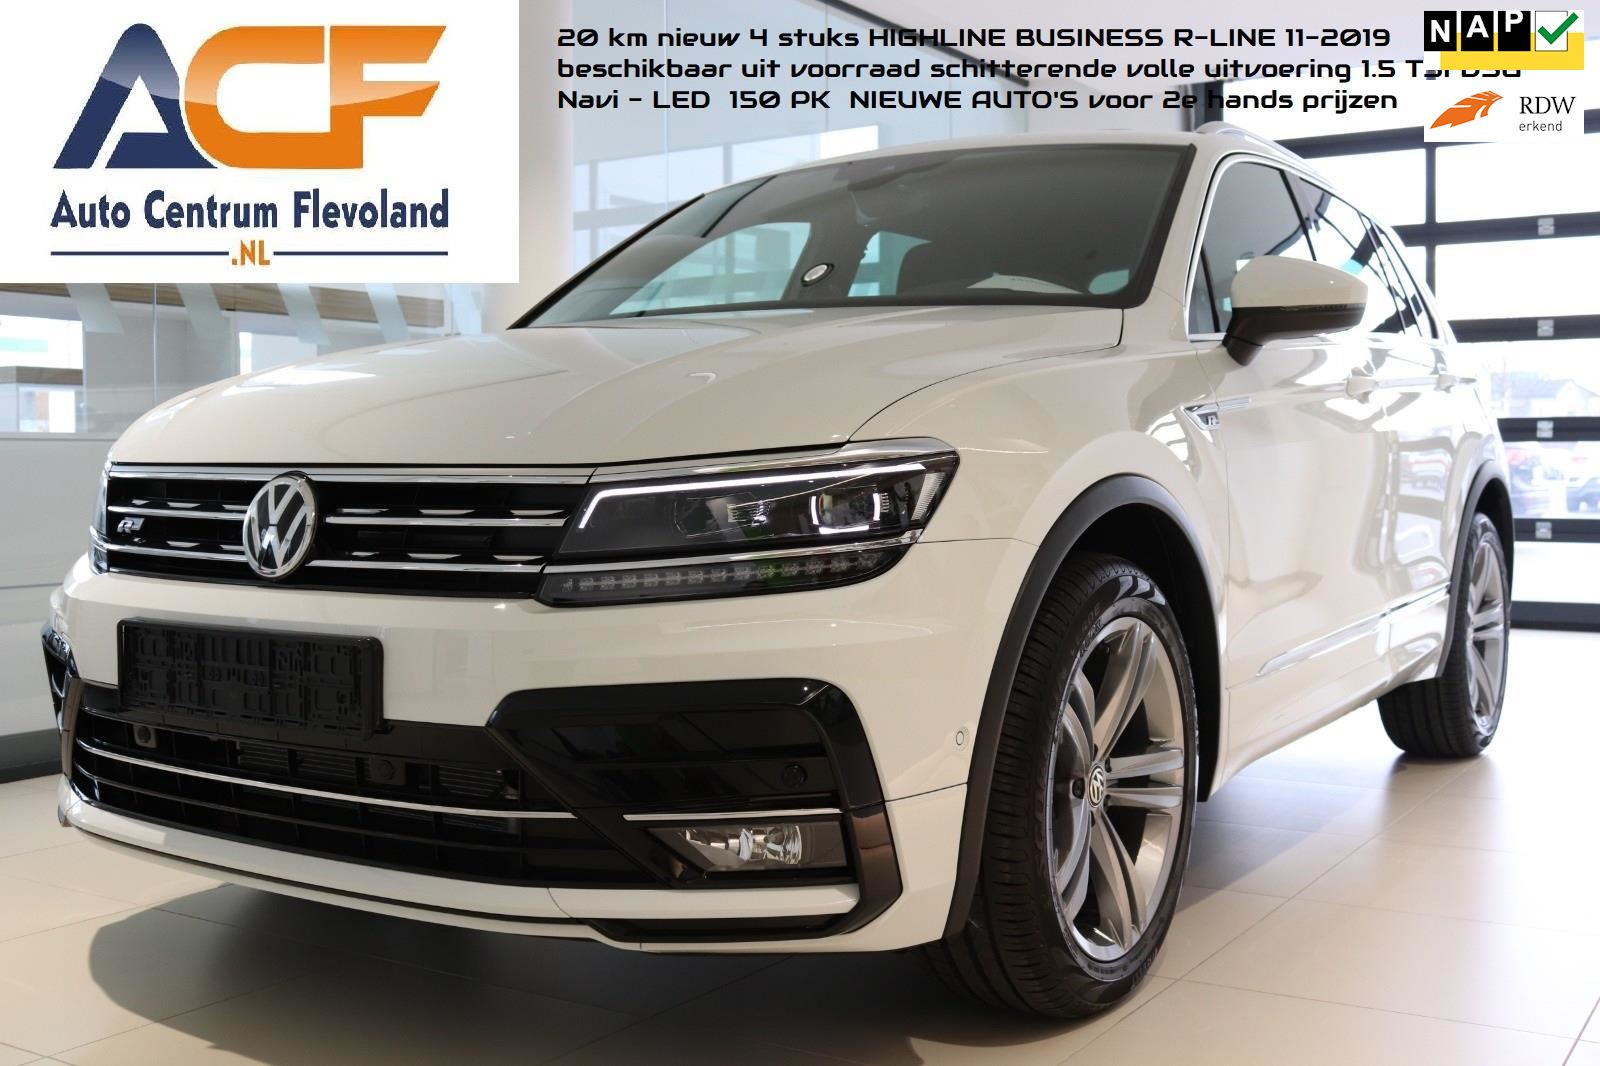 Volkswagen Tiguan 1.5 TSI 150 PKACT NAVI LED Highline Business R occasion - Autocentrum Flevoland